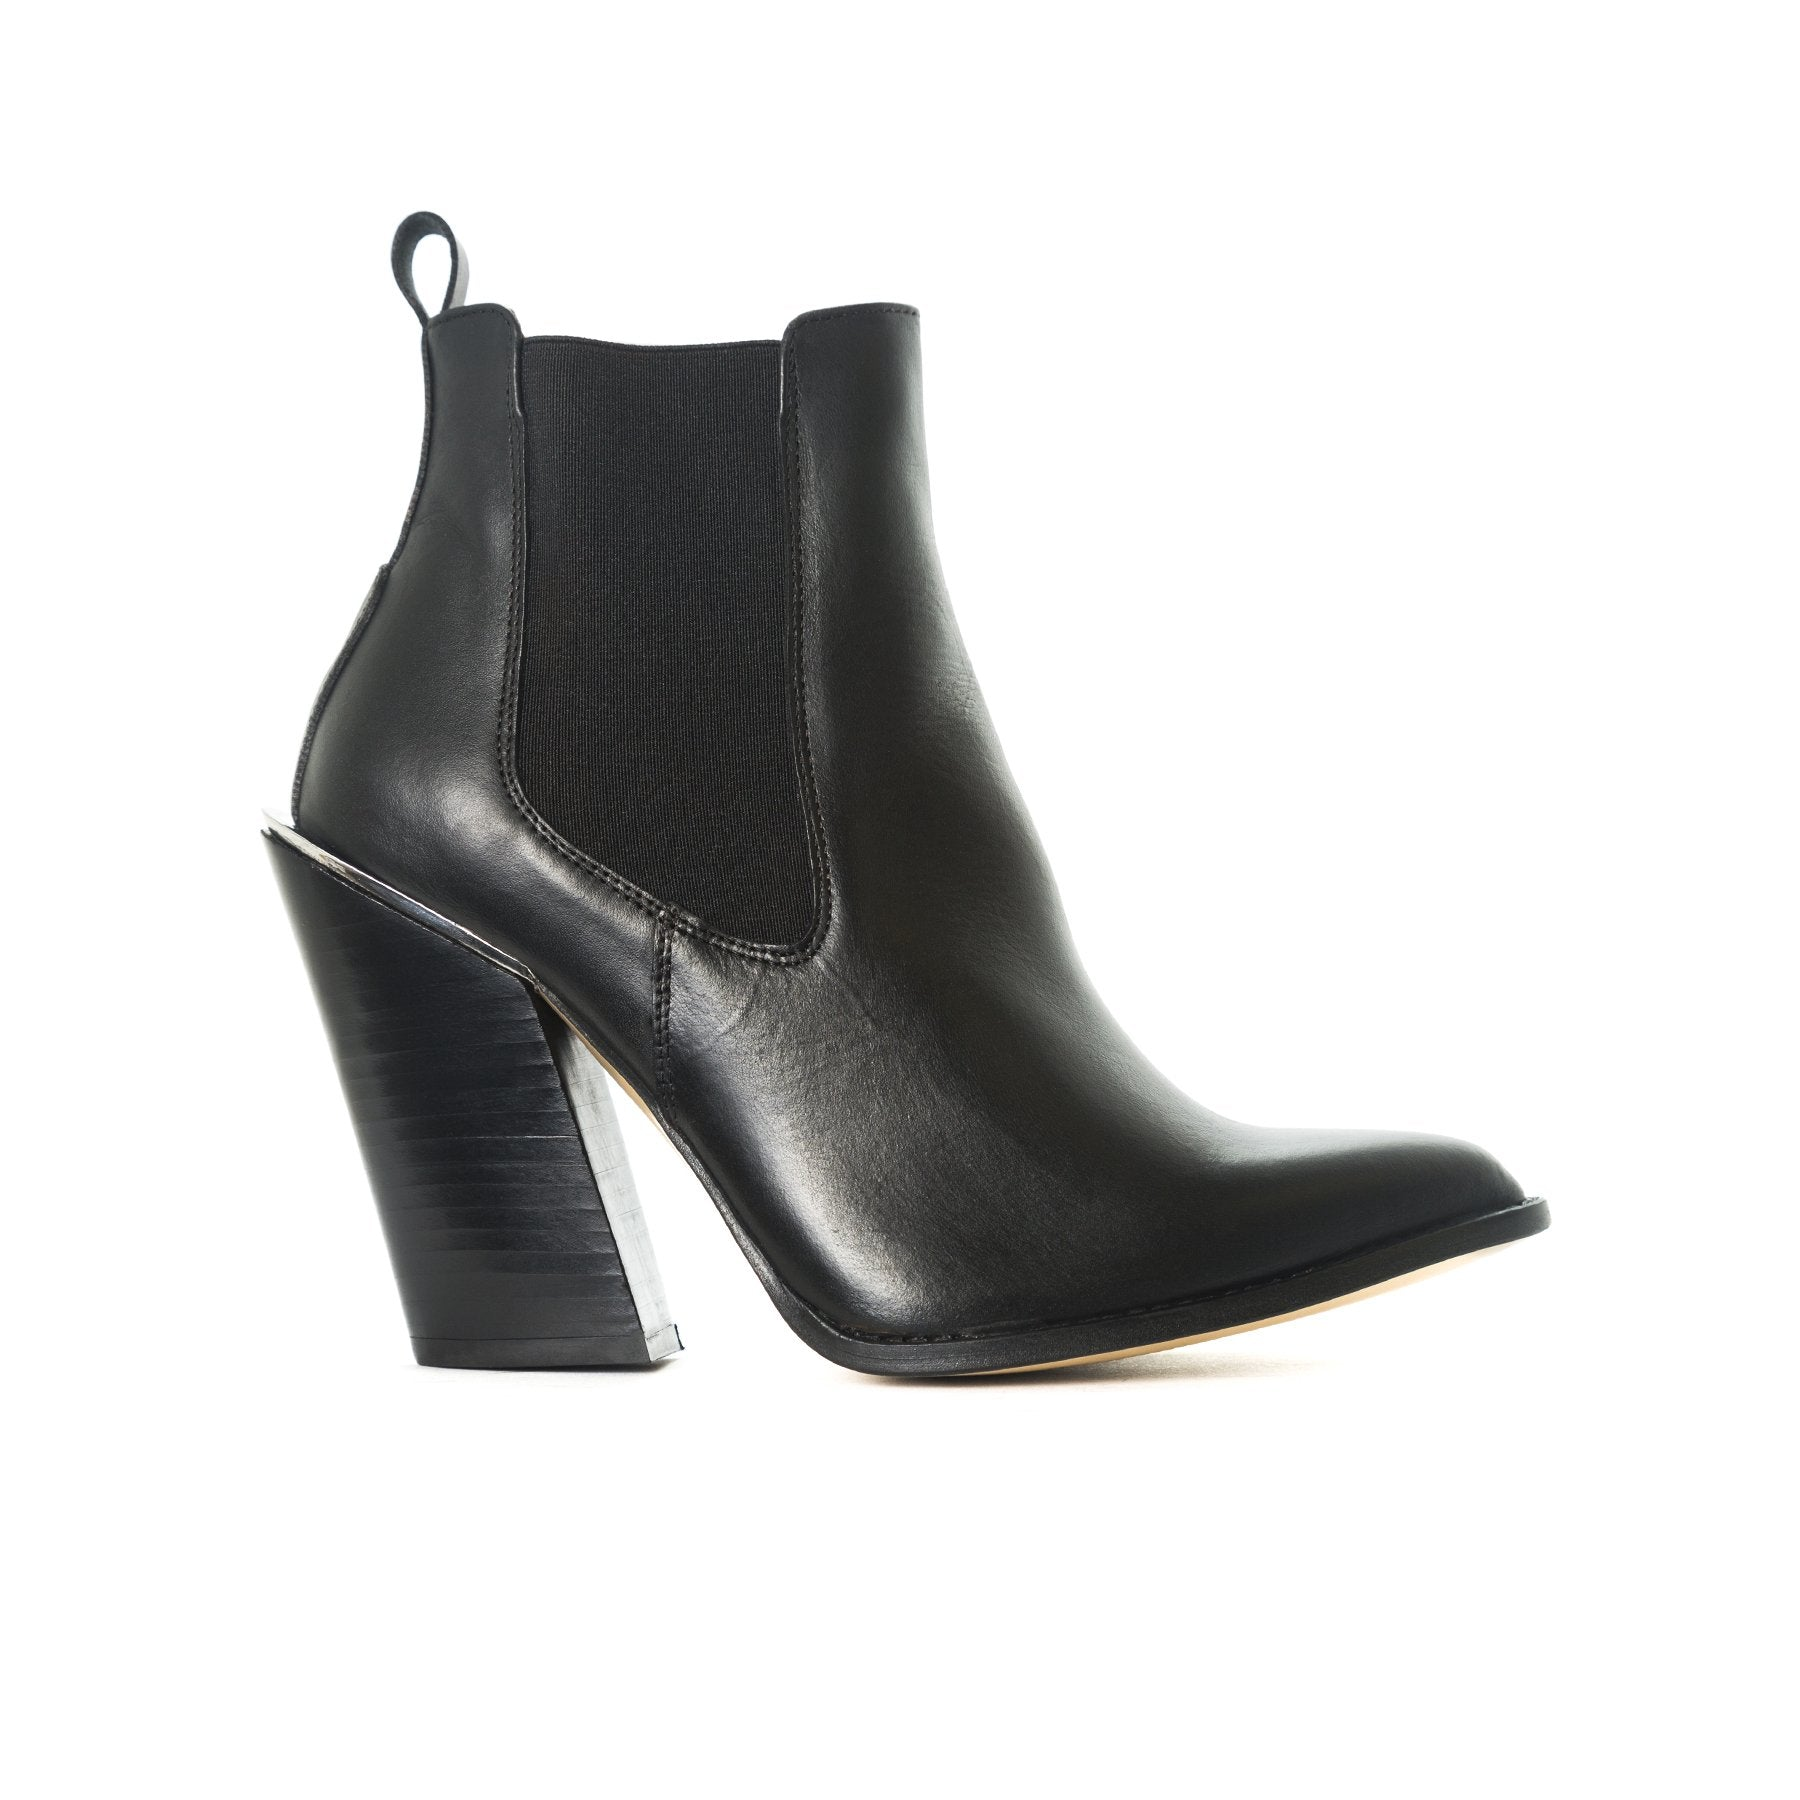 Nantoro Black Leather Boots